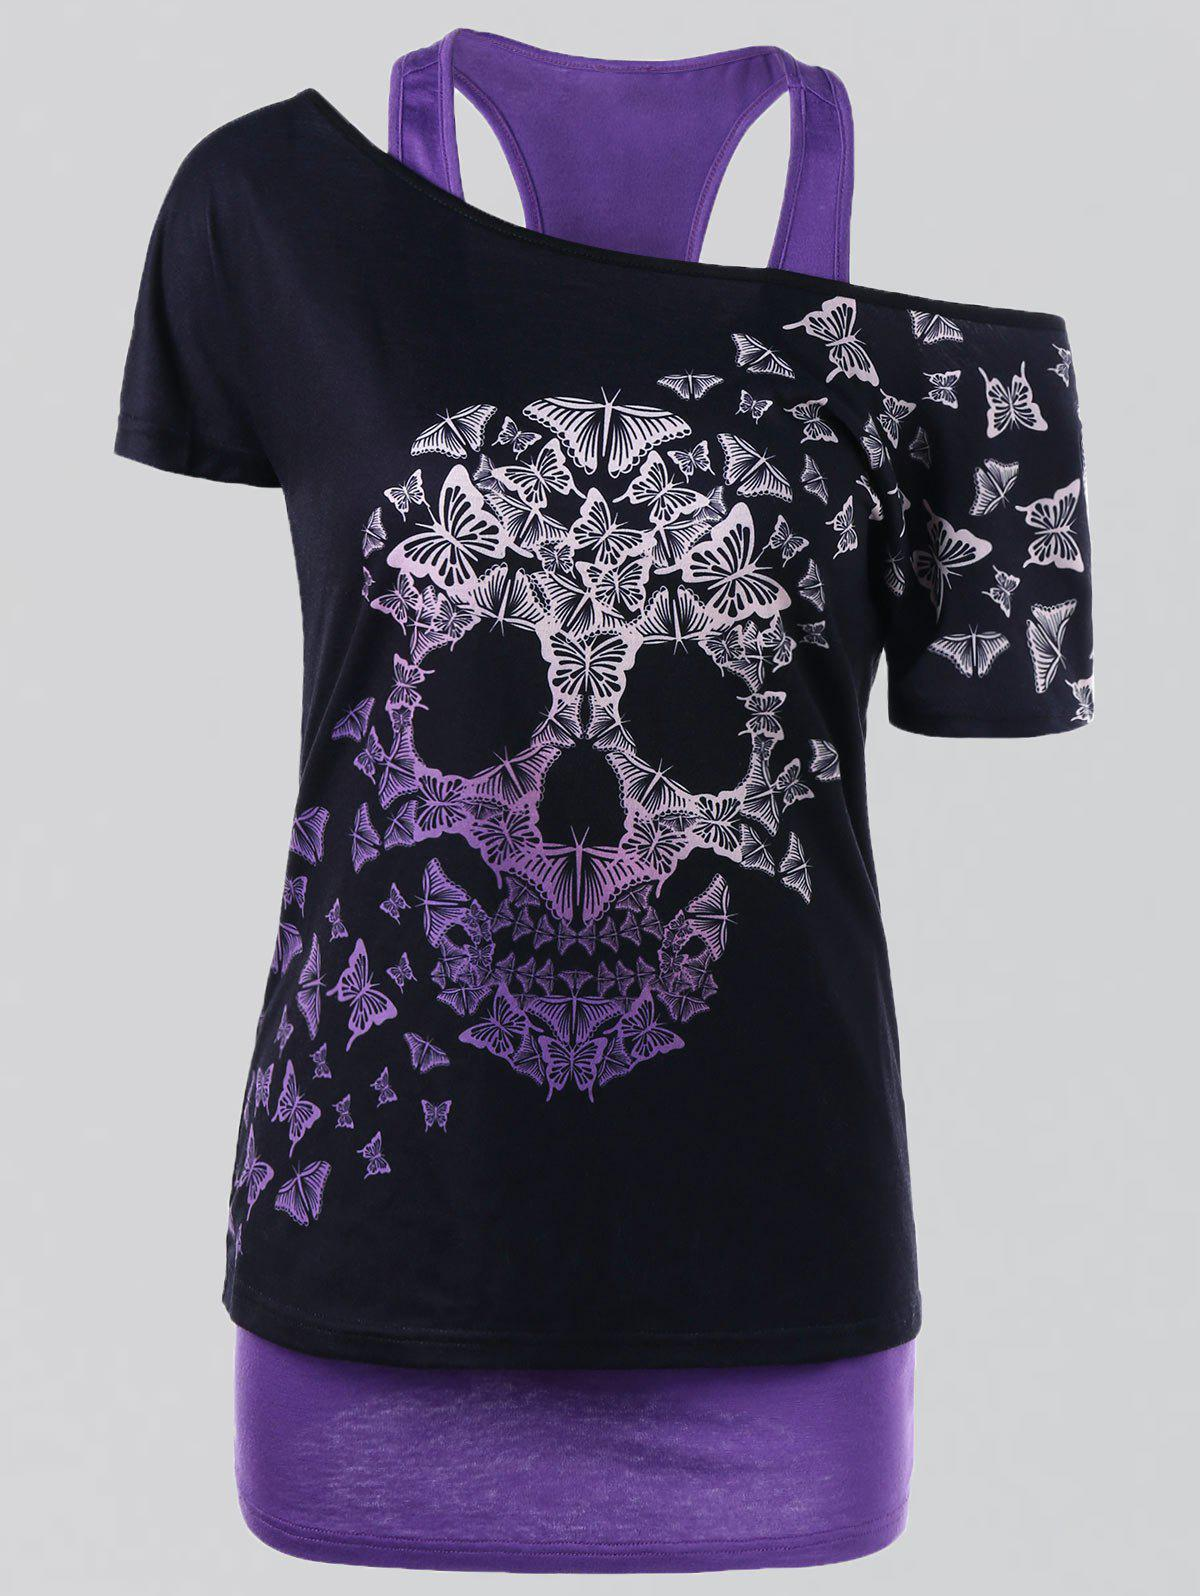 Plus Size Butterfly Skull T-shirt with Tank Top - PURPLE 3XL